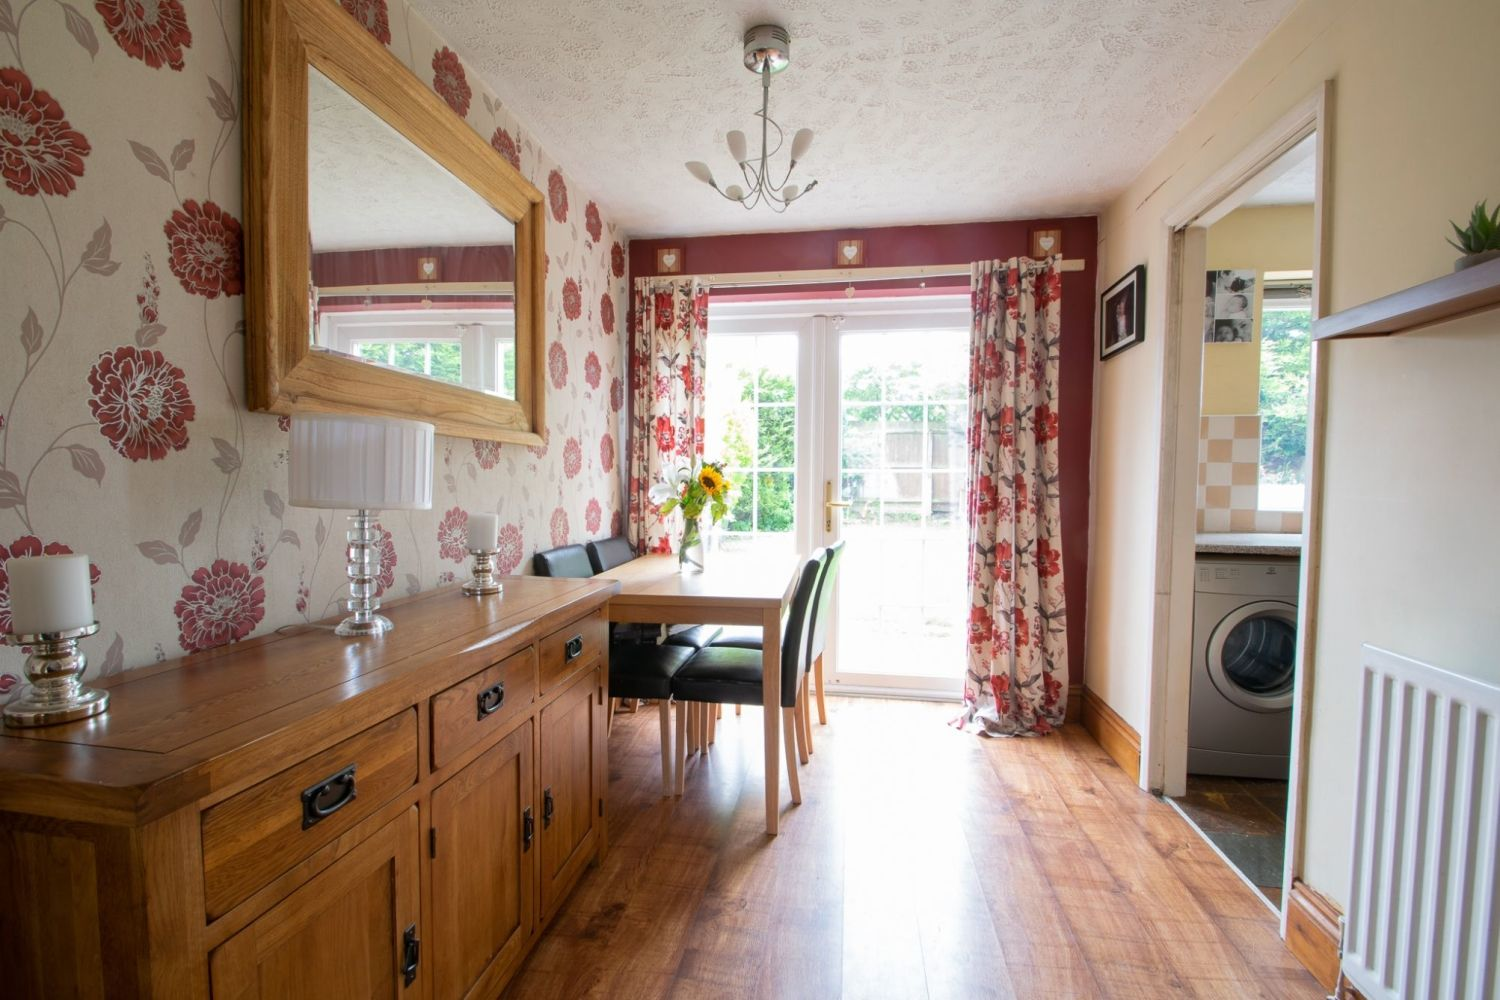 3 bed terraced for sale in Westcombe Grove, Birmingham  - Property Image 6